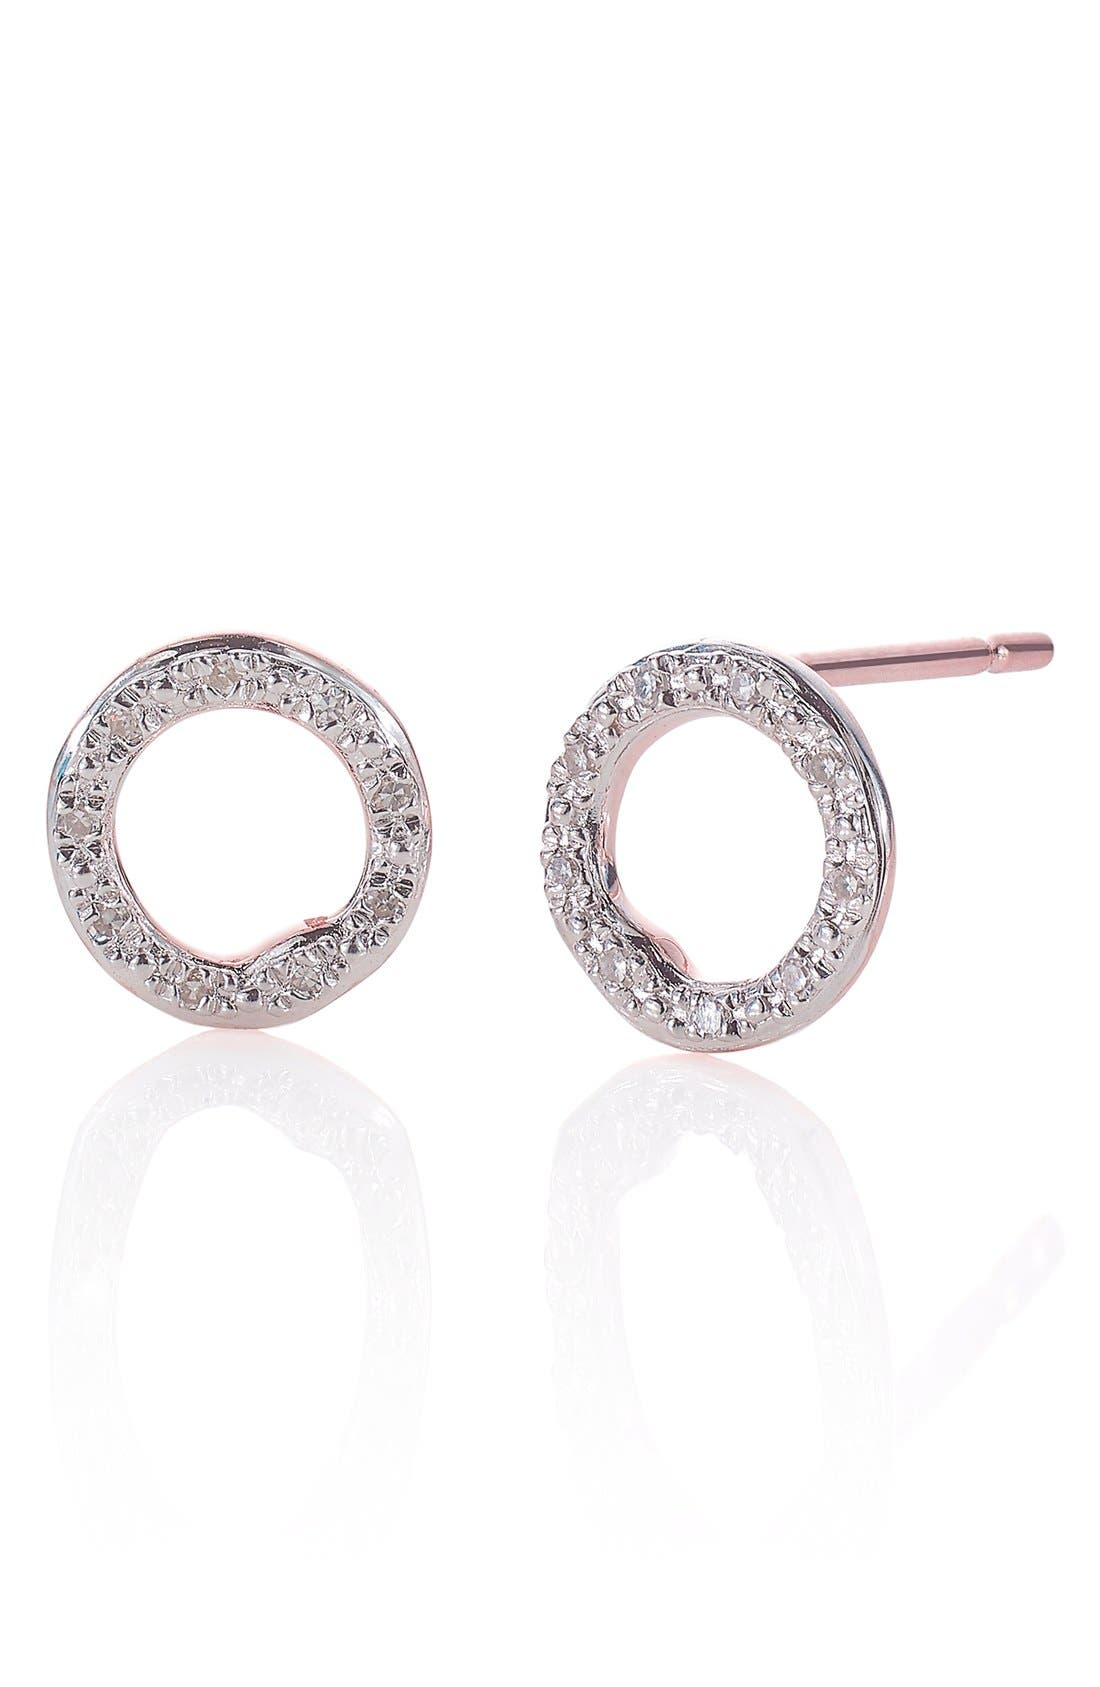 Alternate Image 1 Selected - Monica Vinader 'Riva' Circle Stud Diamond Earrings